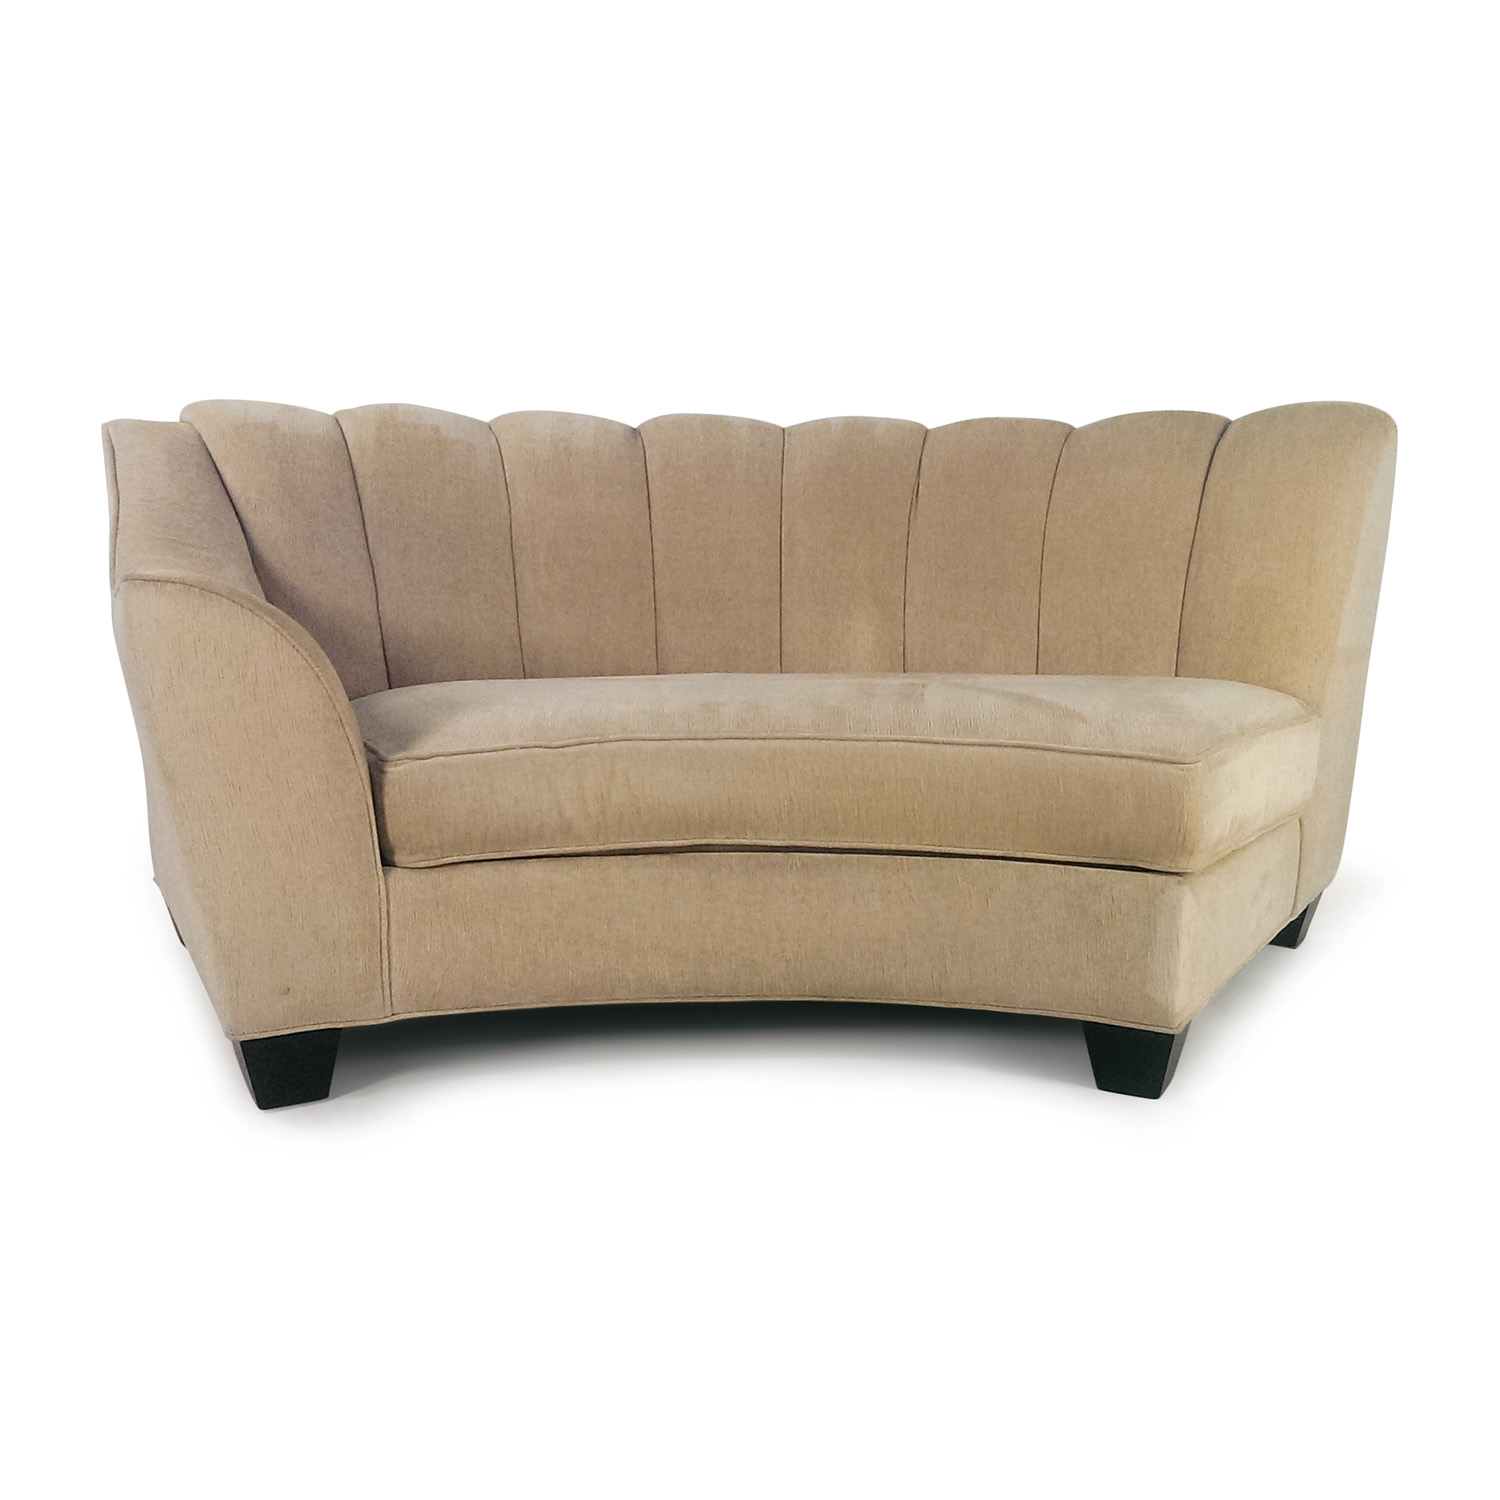 Admirable 84 Off Cindy Crawford Home Cindy Crawford Beige Loveseat Sofas Caraccident5 Cool Chair Designs And Ideas Caraccident5Info